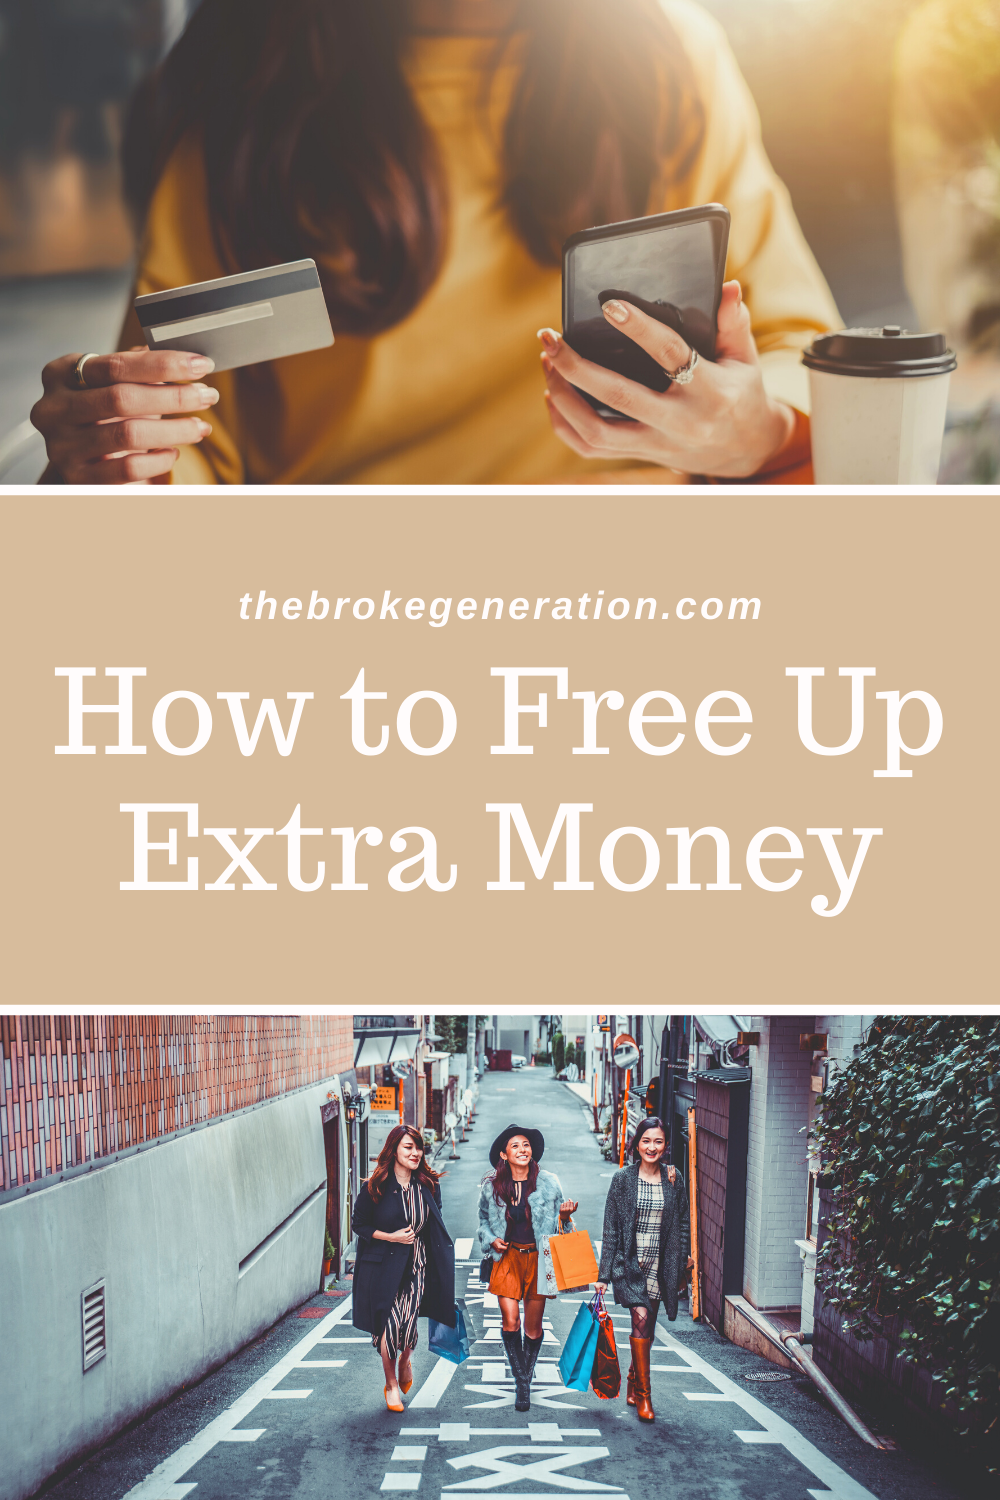 How to Free Up Extra Money